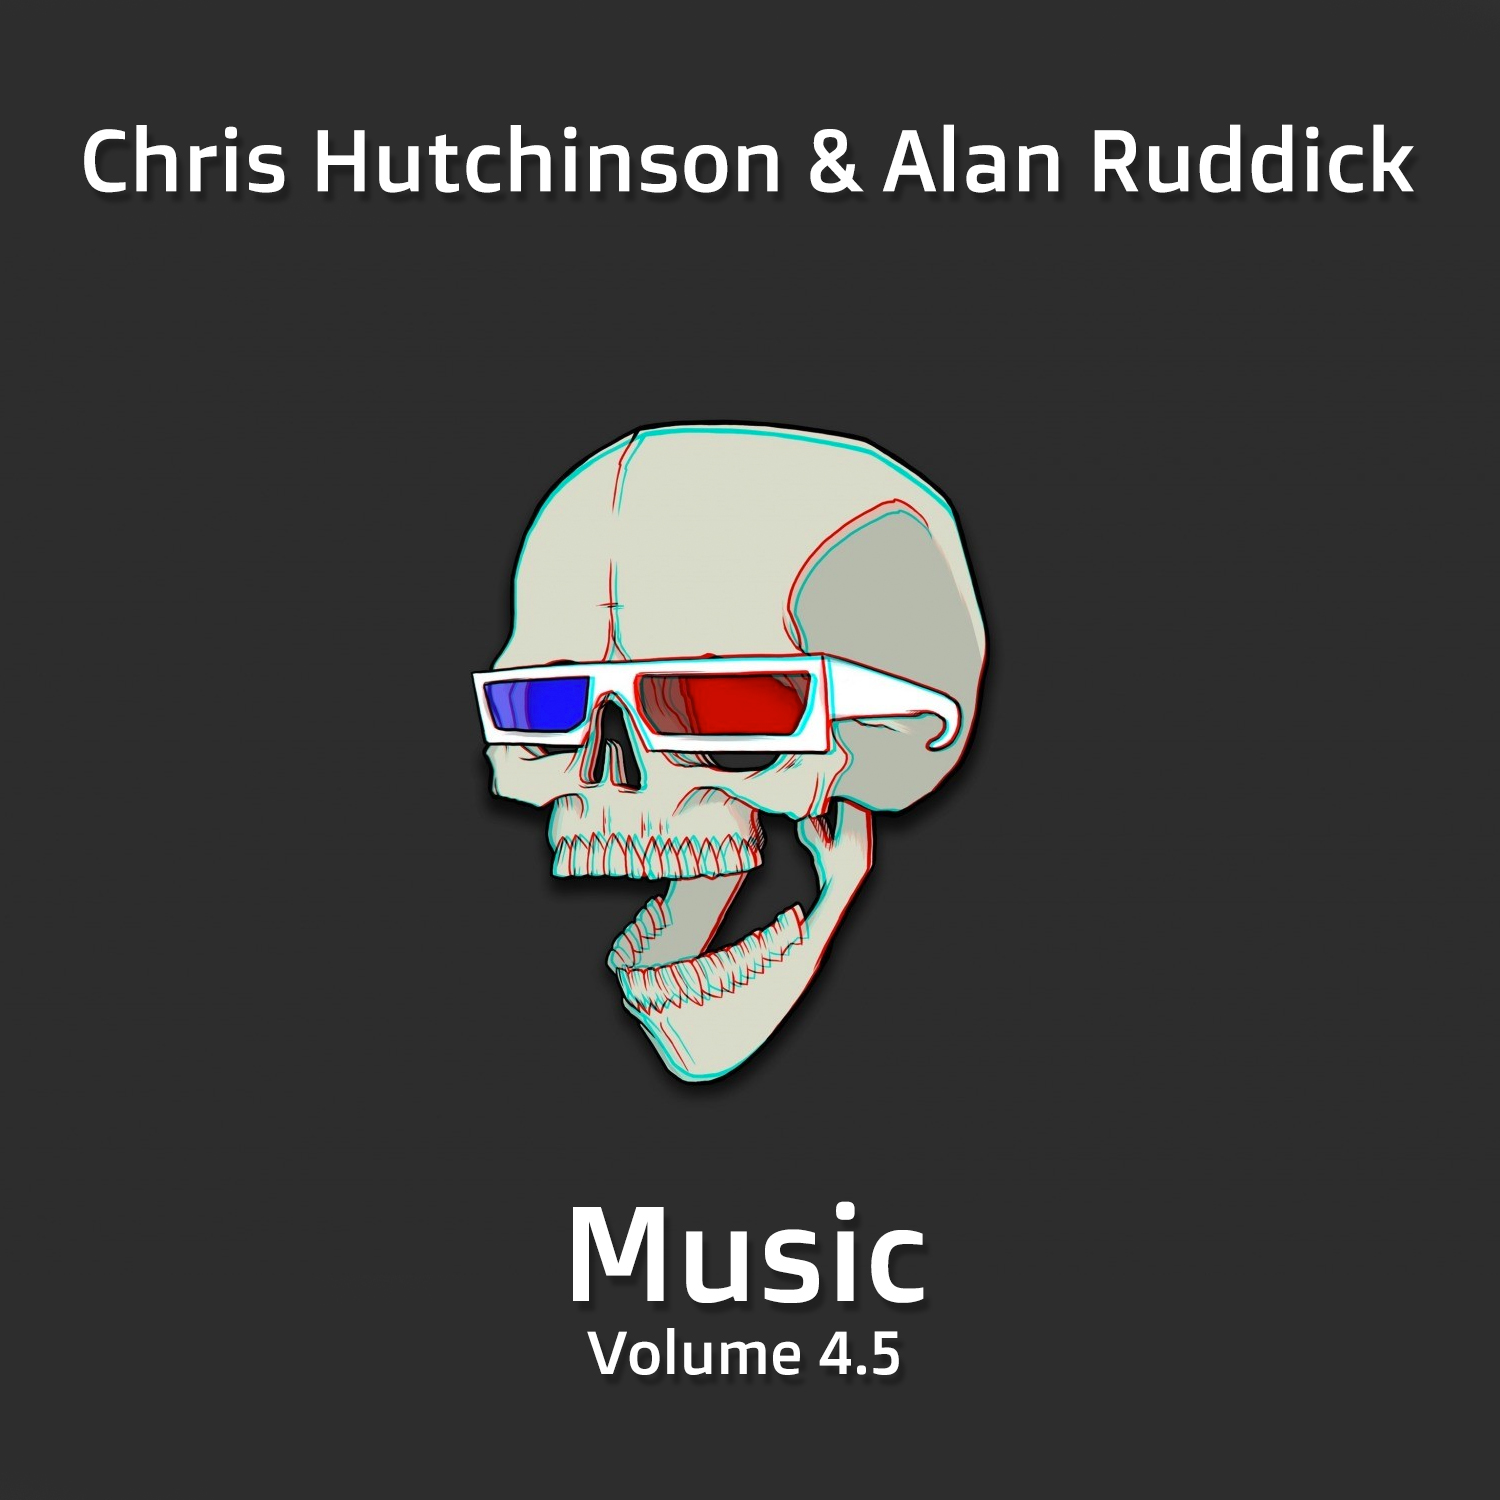 episode 150 - chris hutchinson & alan ruddick